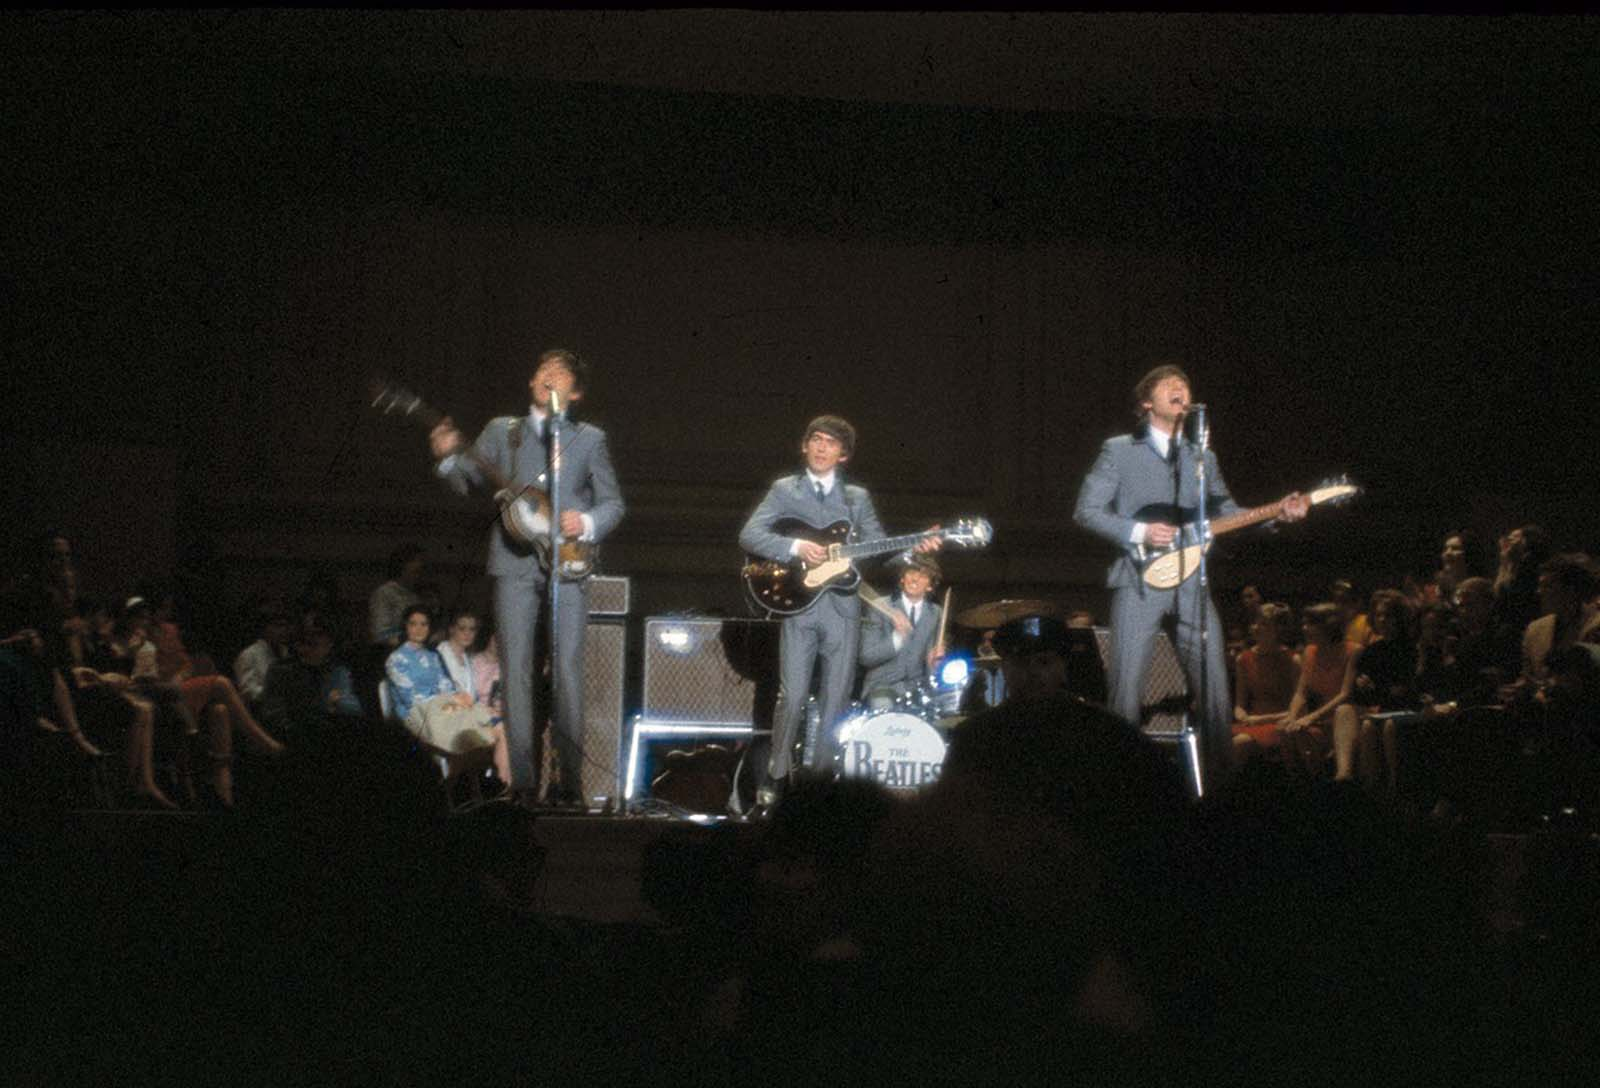 The British rock and roll group the Beatles perform at Carnegie Hall in New York City, on February 12, 1964.